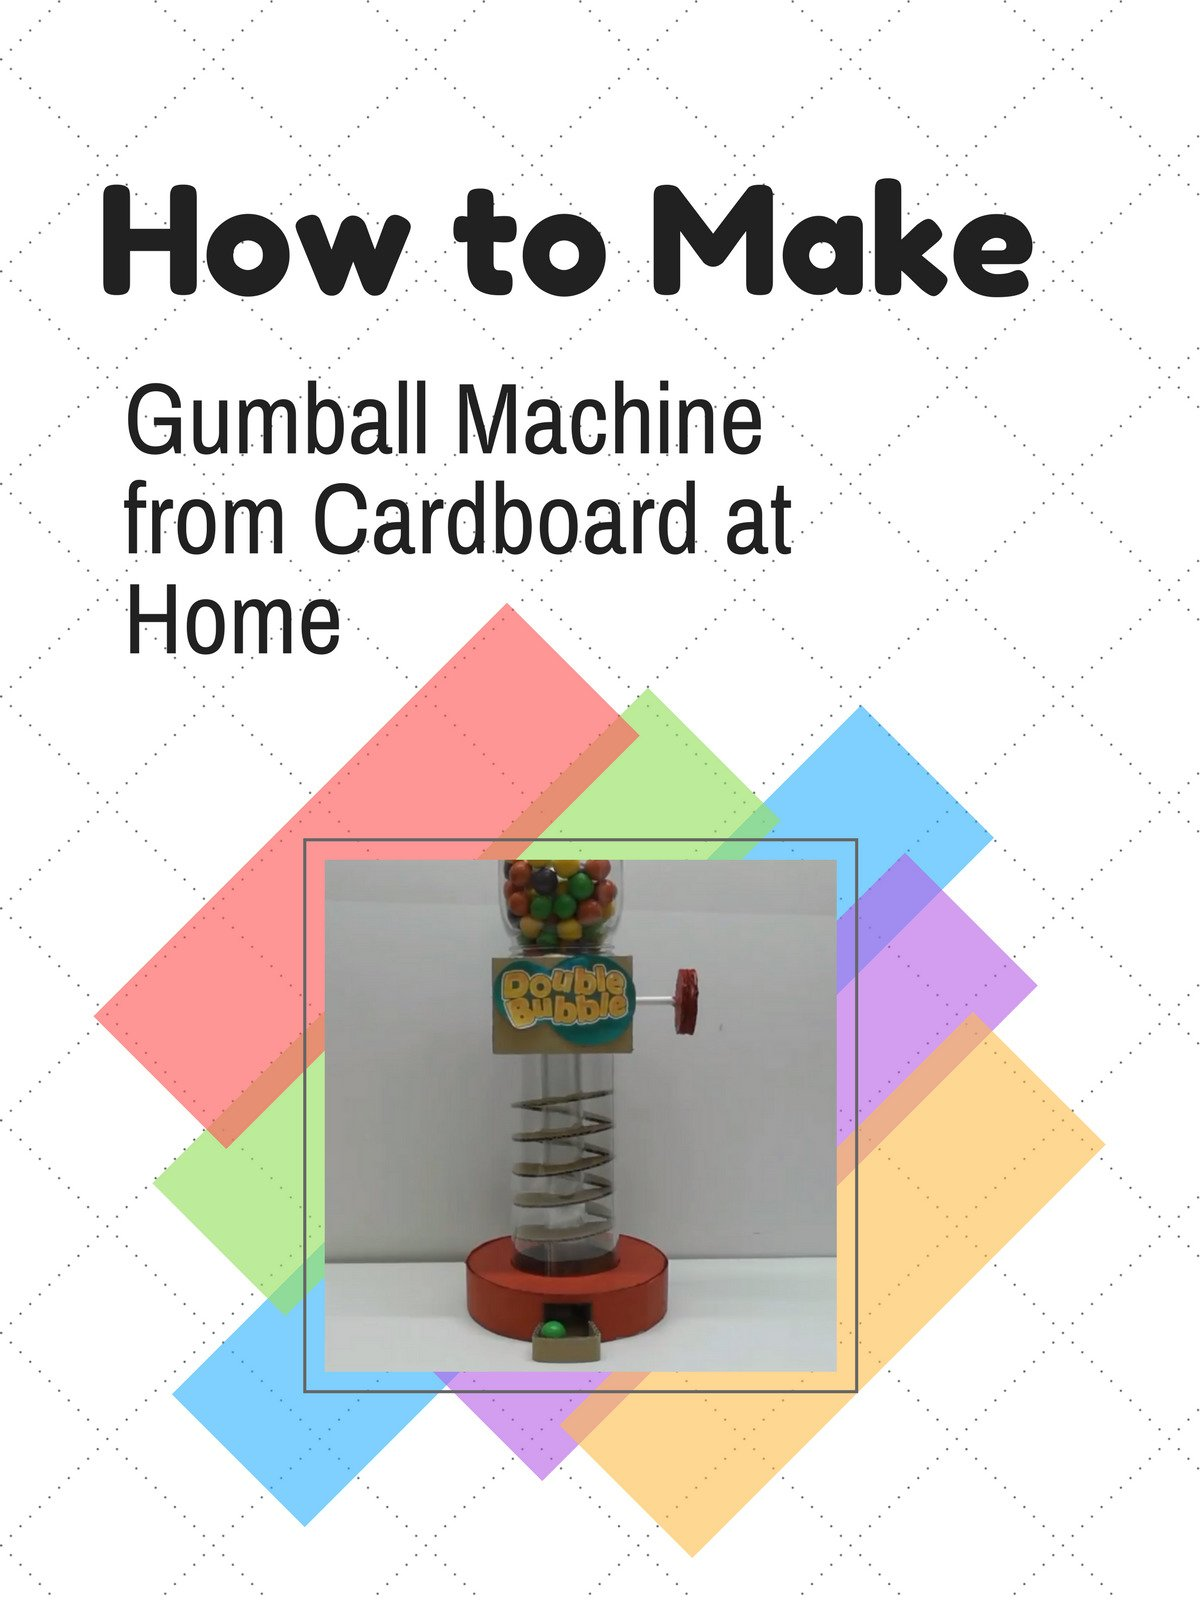 How to make Gumball Machine from Cardboard at Home